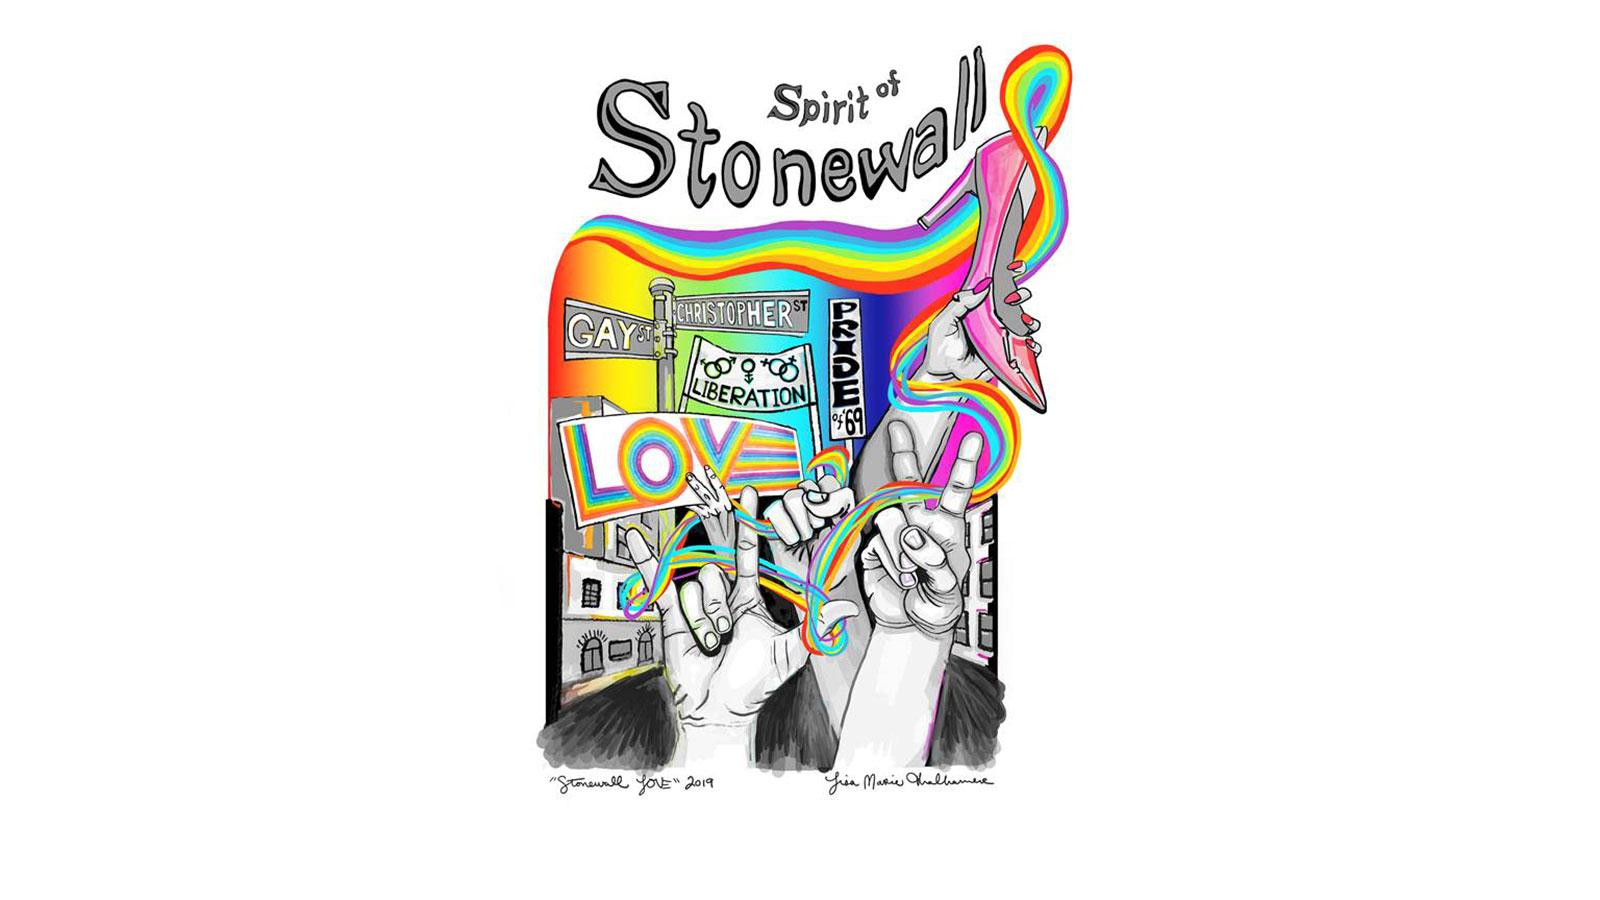 Spirit of Stonewall